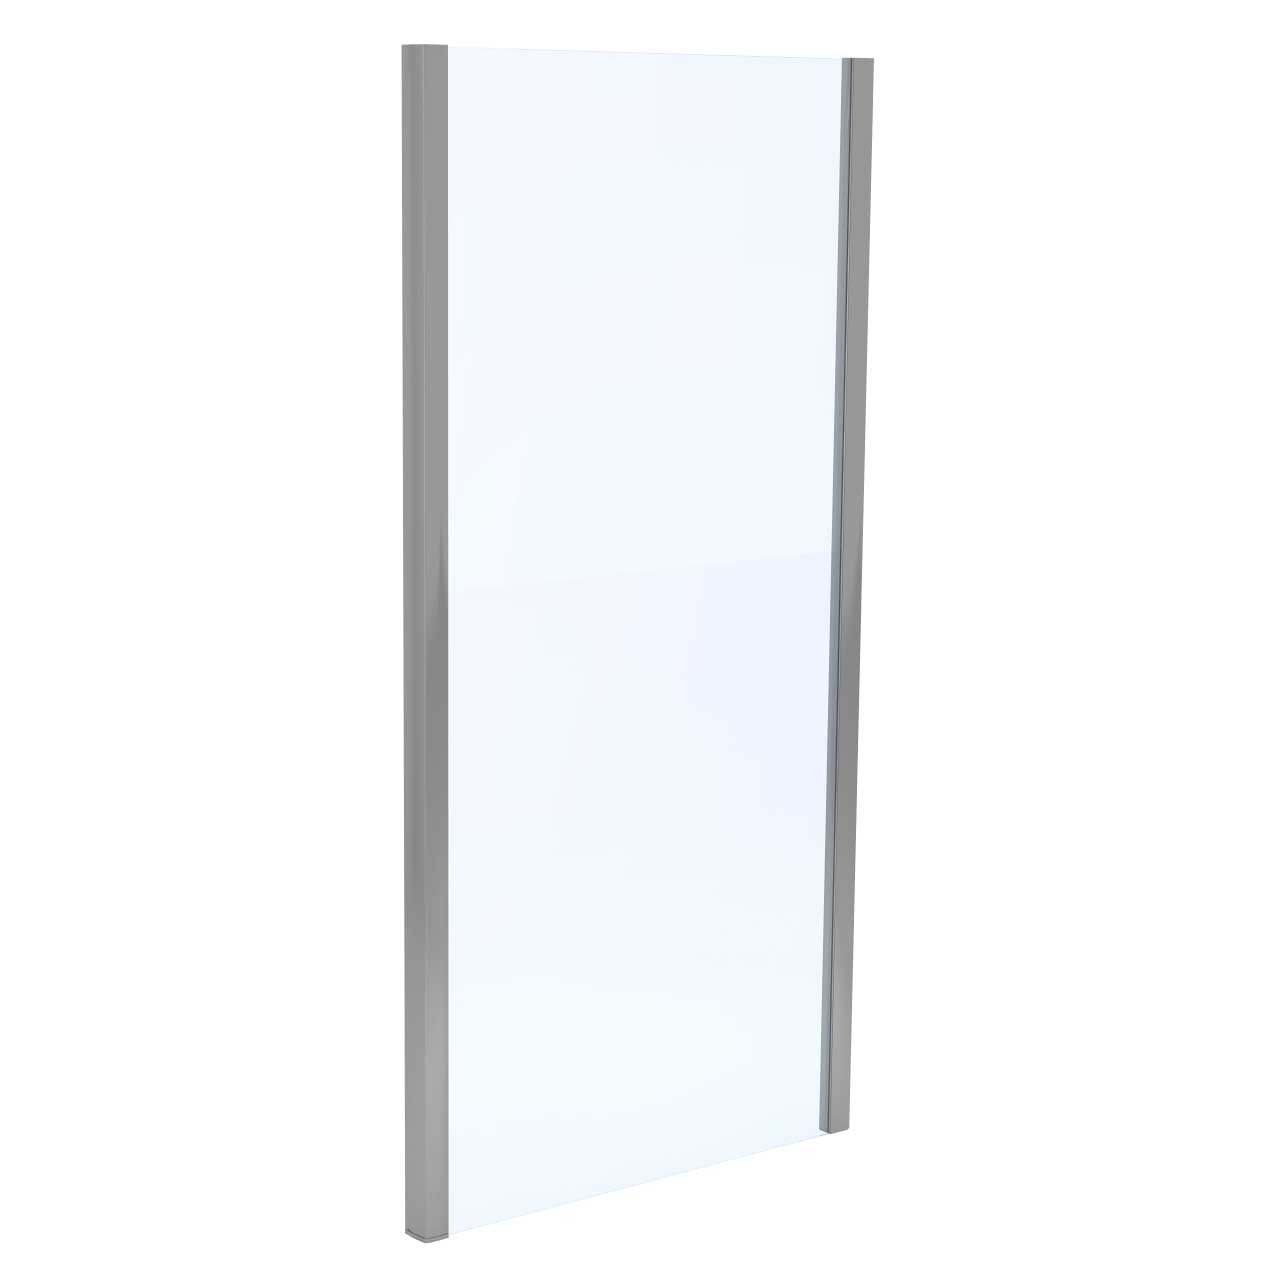 Series 8 1200 x 900 Sliding Door Enclosure